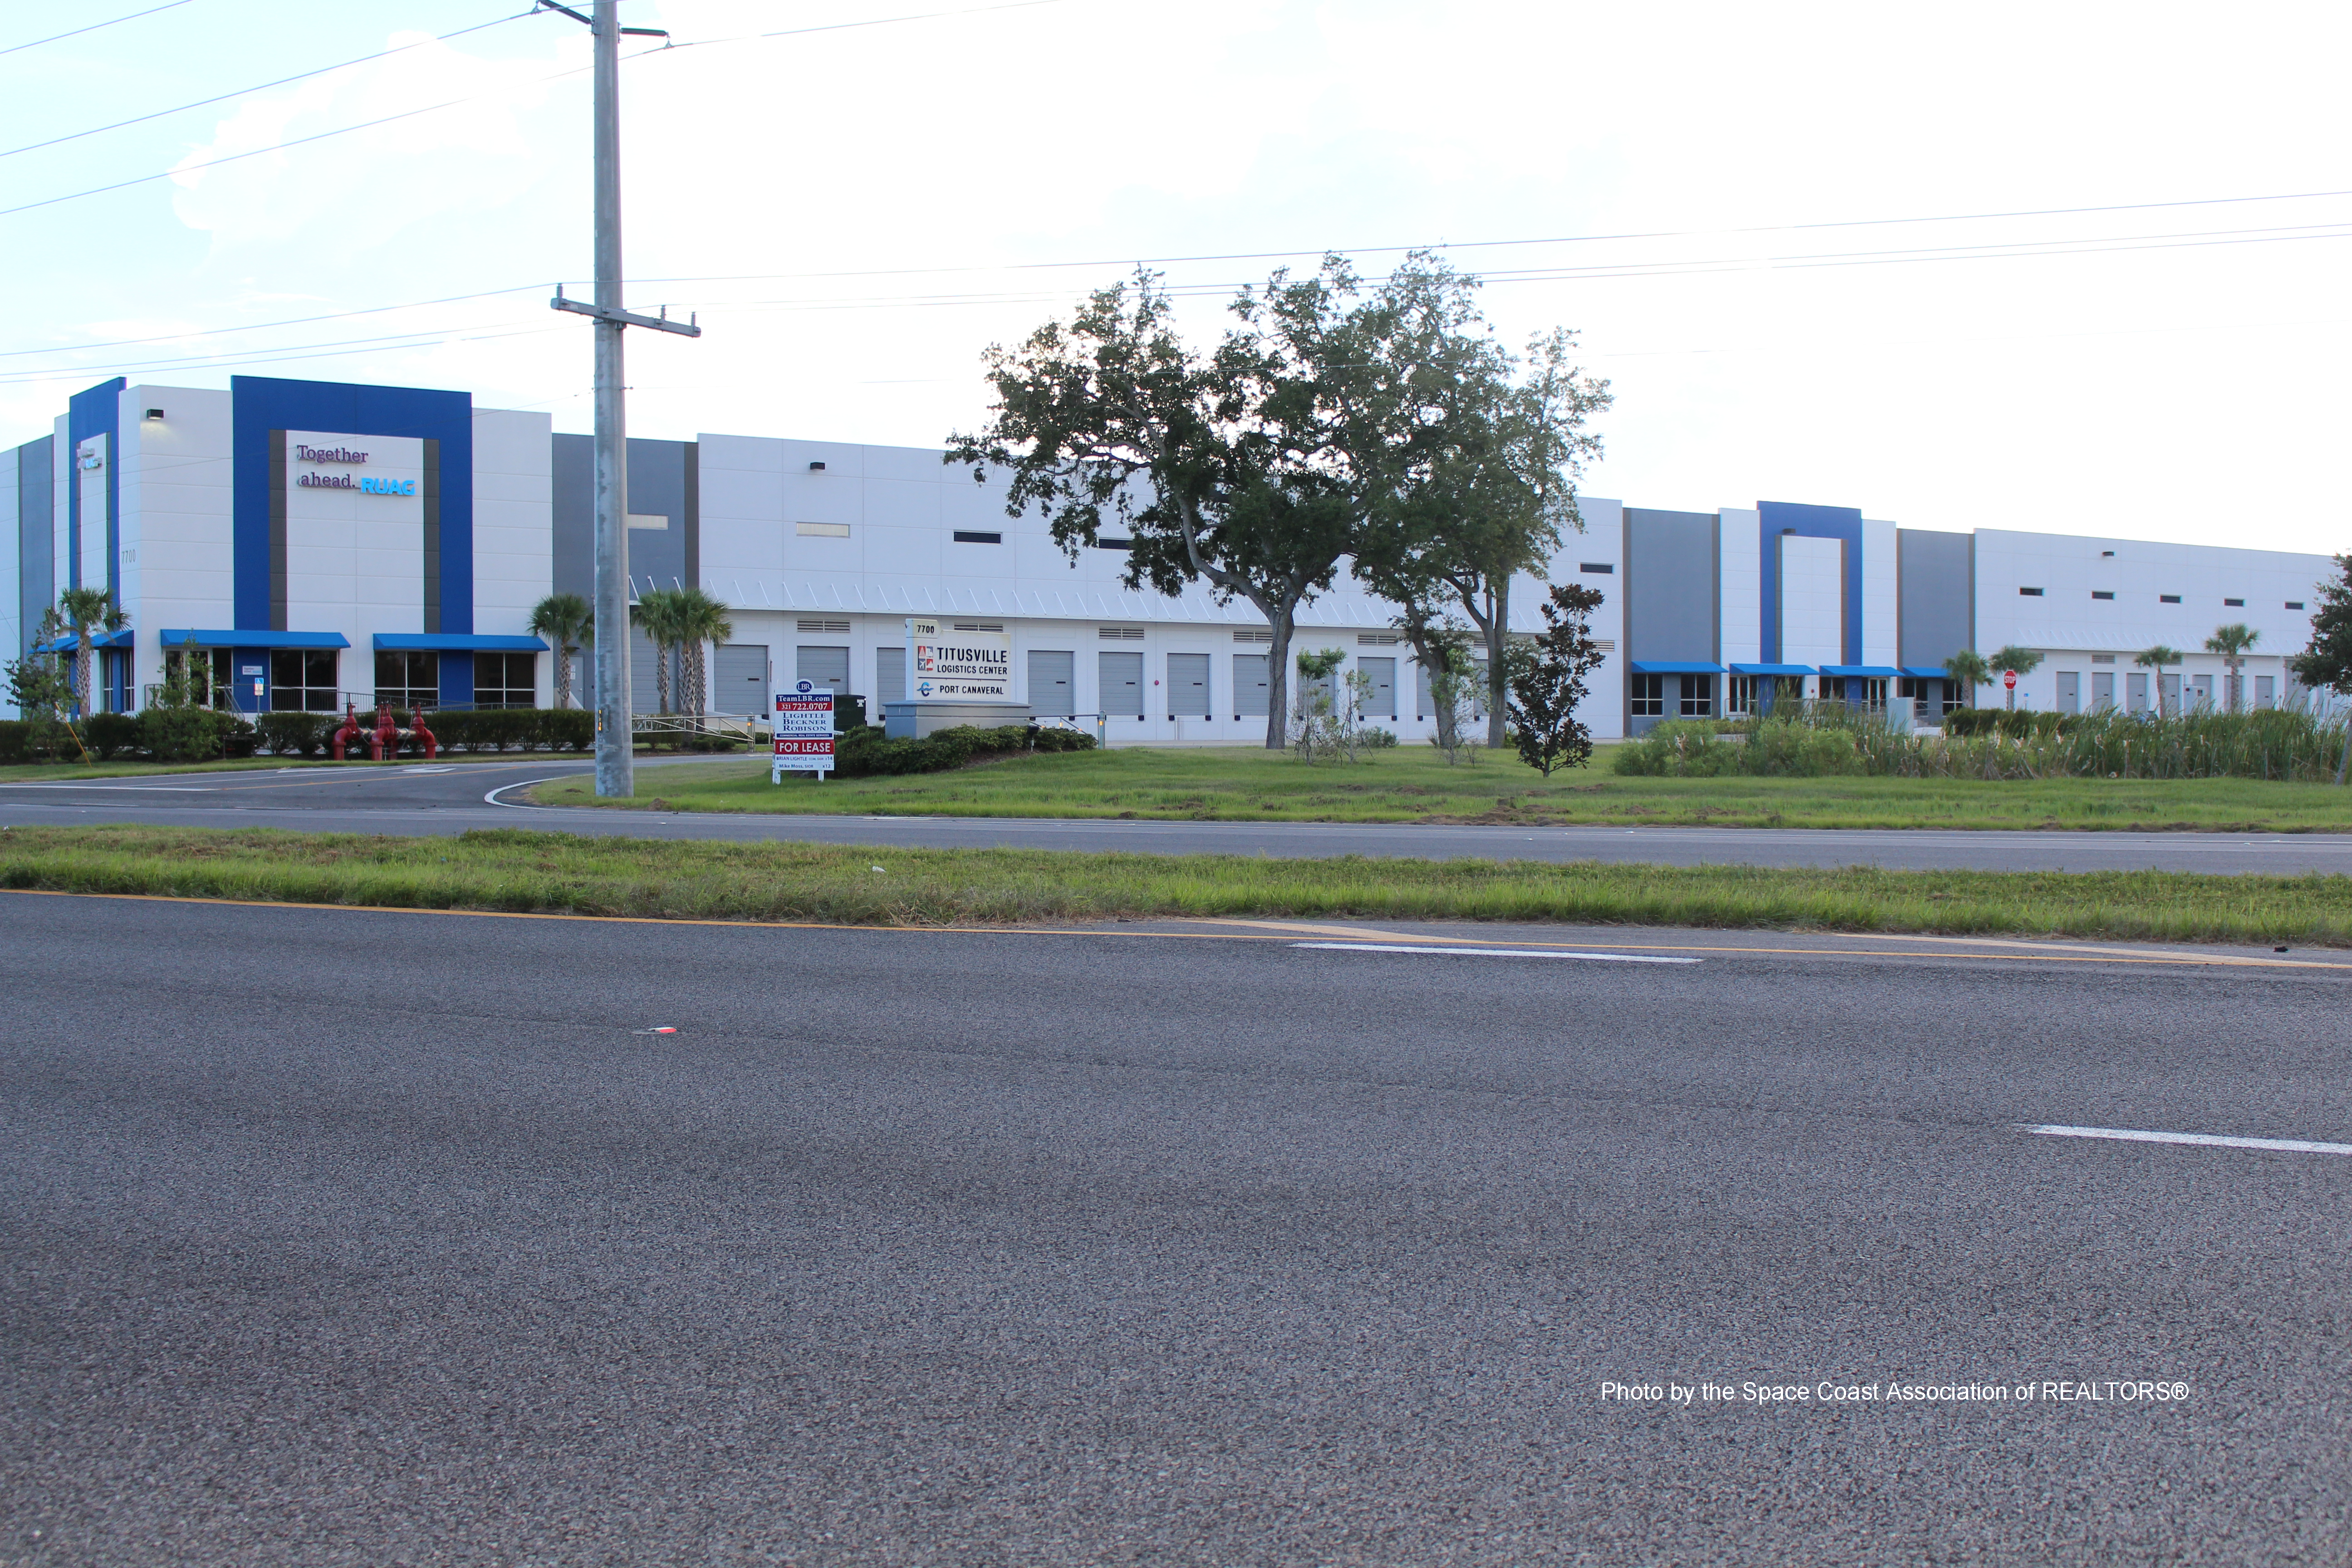 Logistics Center, Port St. John, Florida